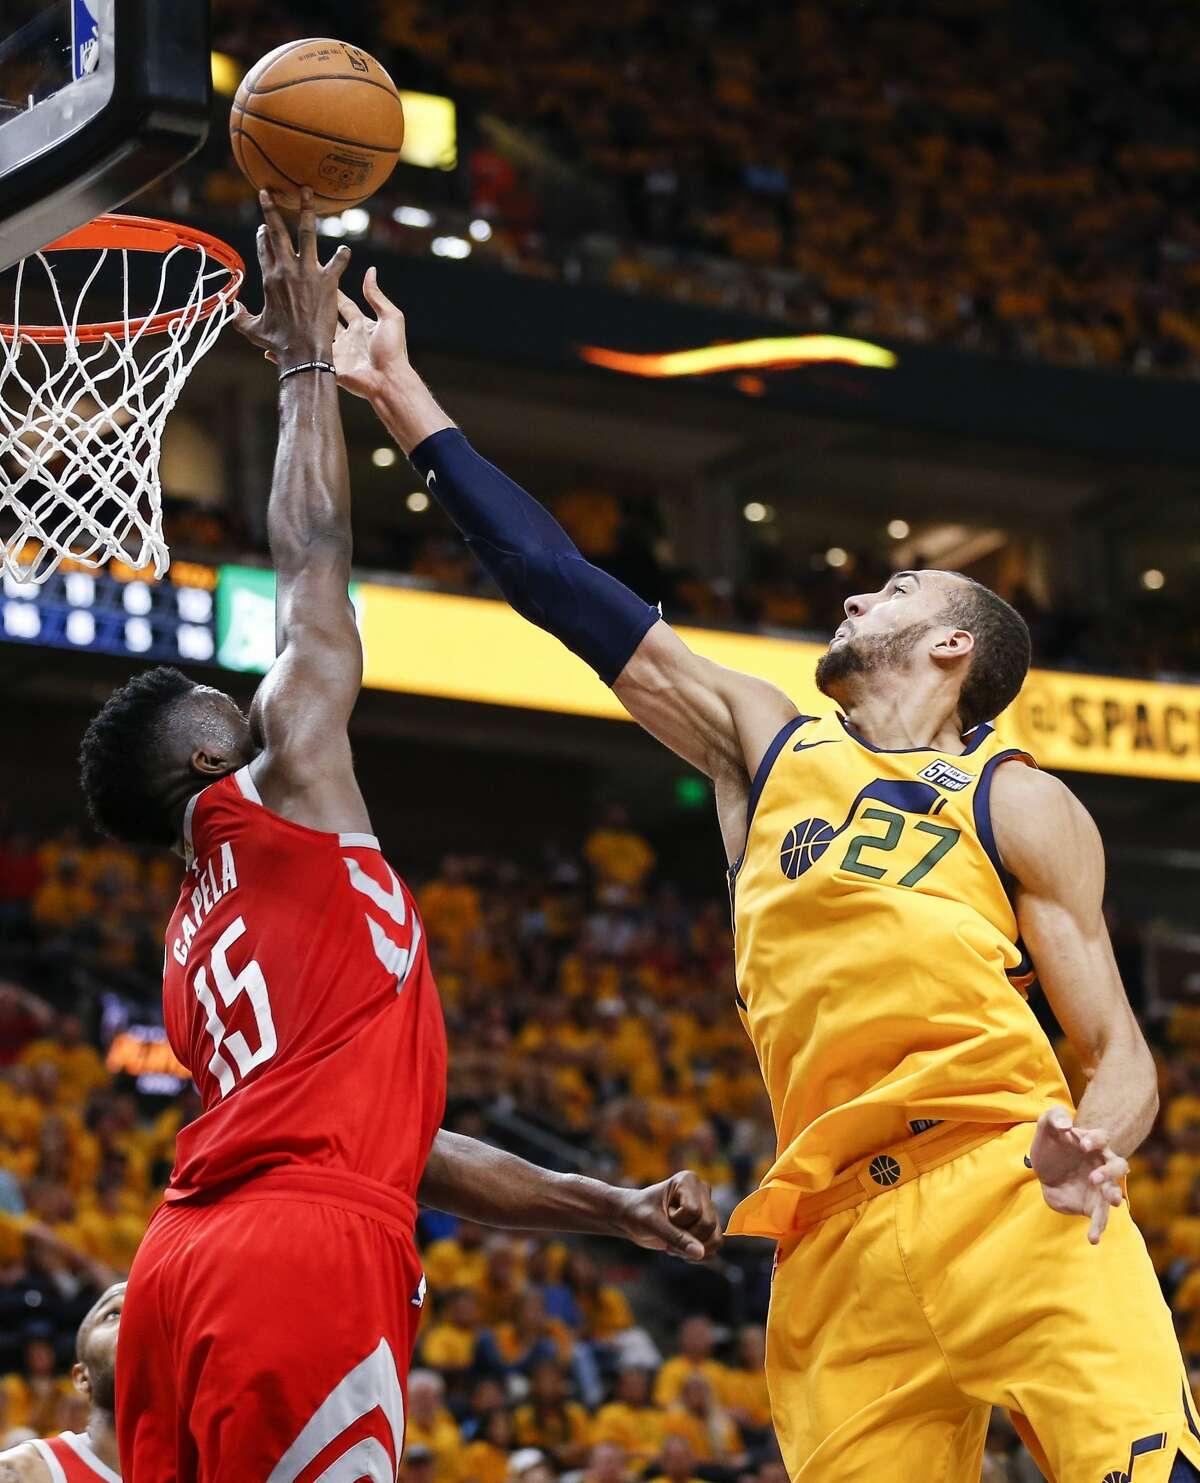 Houston Rockets center Clint Capela (15) blocks a shot by Utah Jazz center Rudy Gobert (27) during the second half of Game 4 of the NBA second-round playoff series at Vivint Smart Home Arena Sunday, May 6, 2018 in Salt Lake City. (Michael Ciaglo / Houston Chronicle)